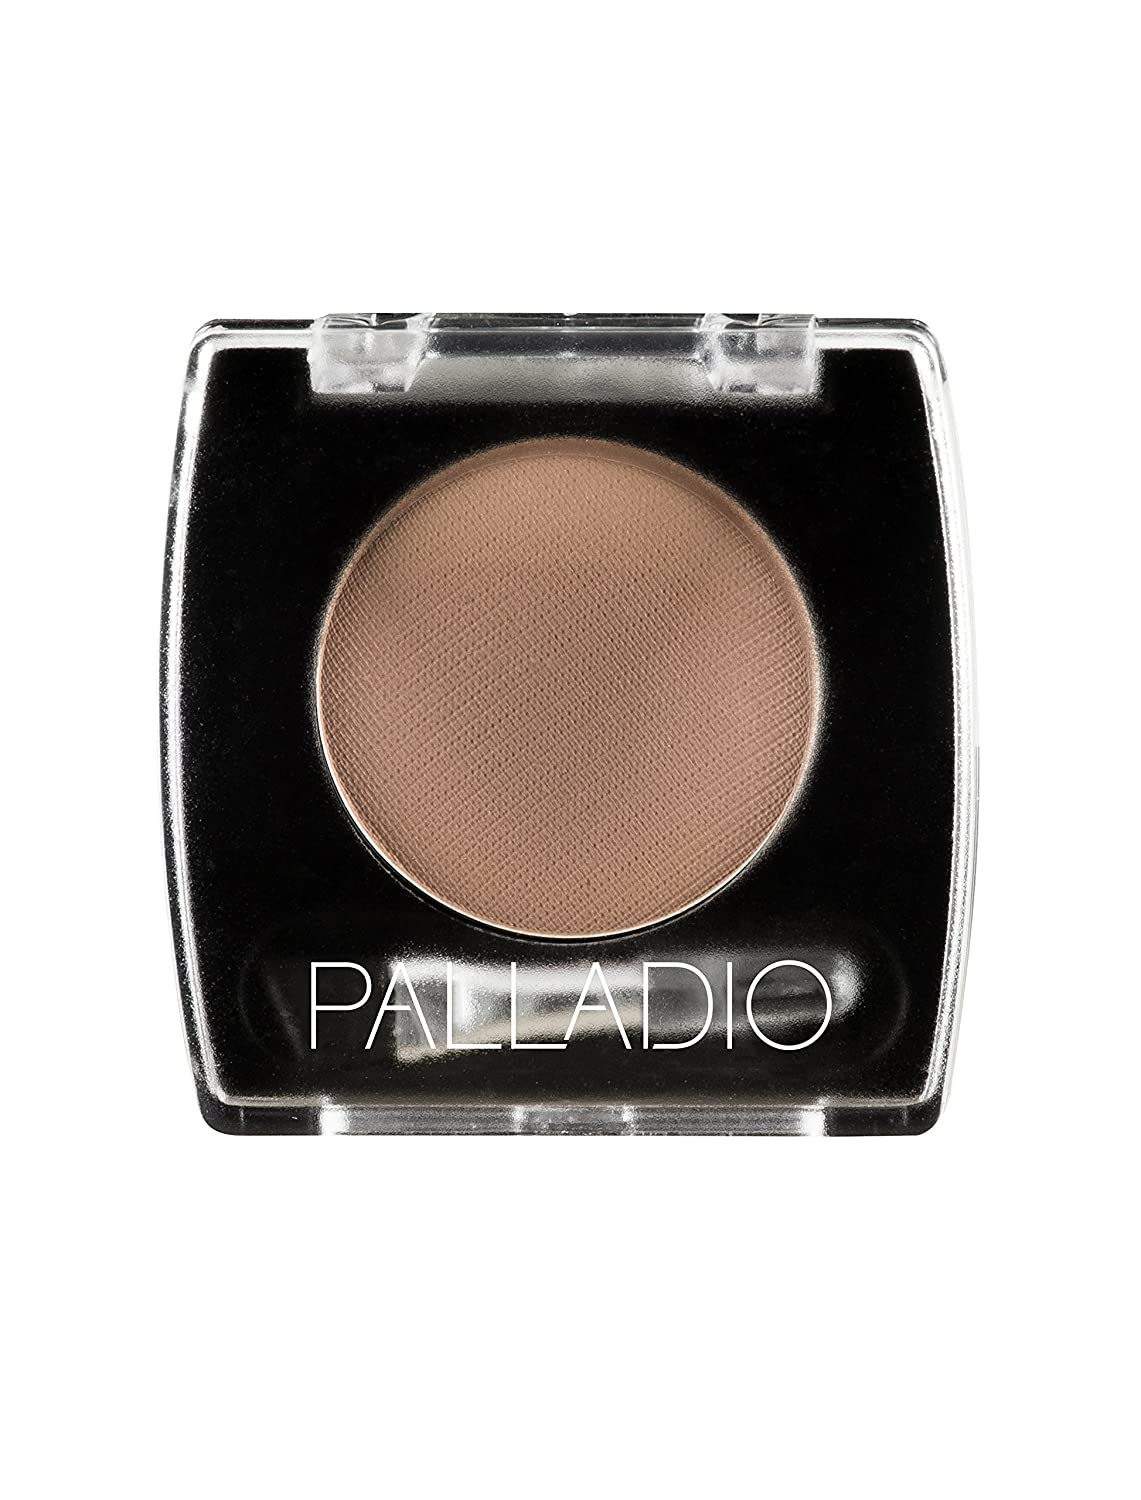 Palladio Brow Powder for Eyebrows Taupe and Soft Factory outlet Outstanding Natural Eyebr